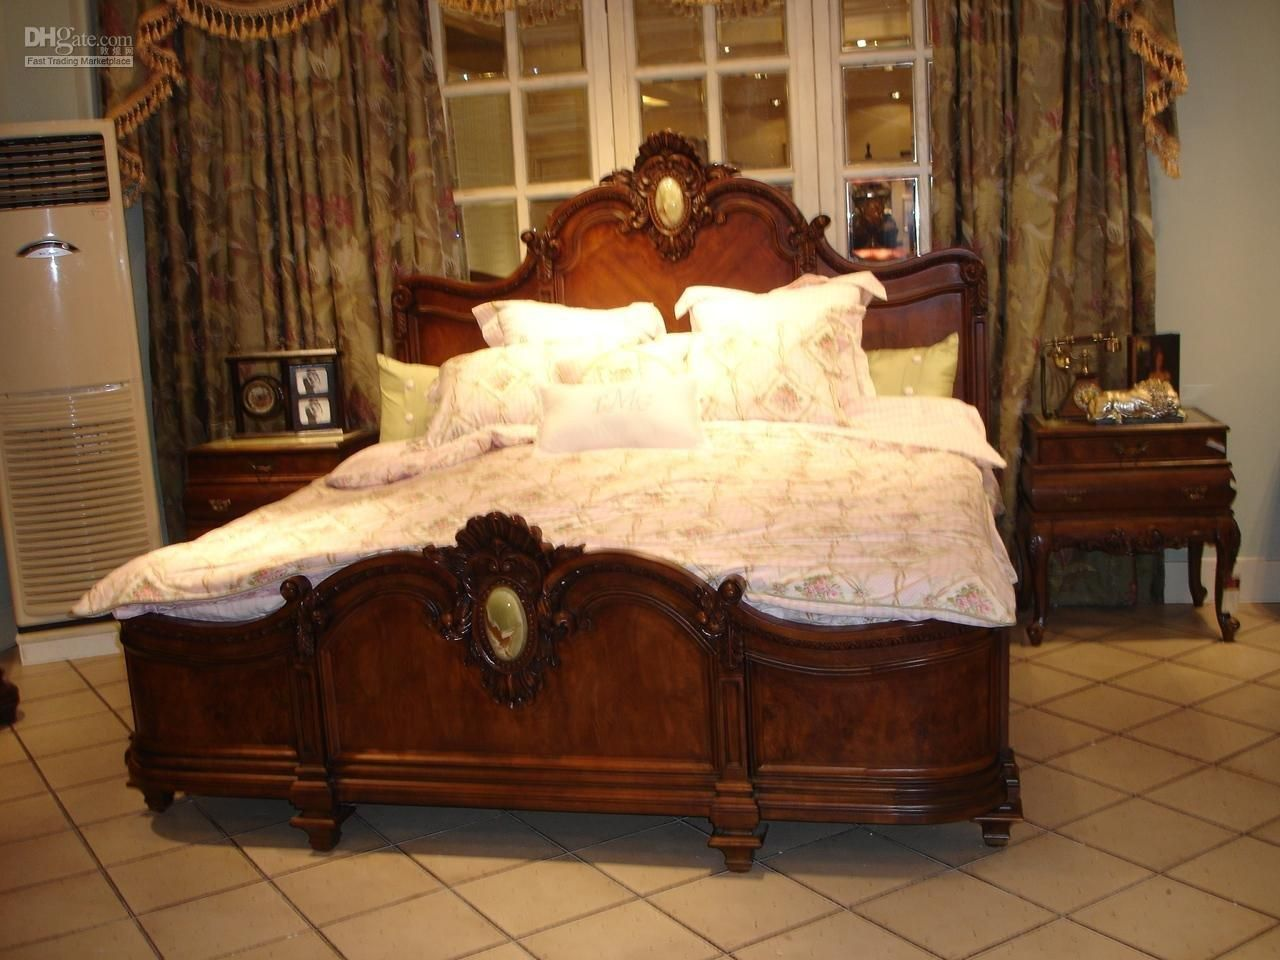 beautiful furniture in wood - bed - Wooden Antique Furniture Designs - Other Antiques Pinterest